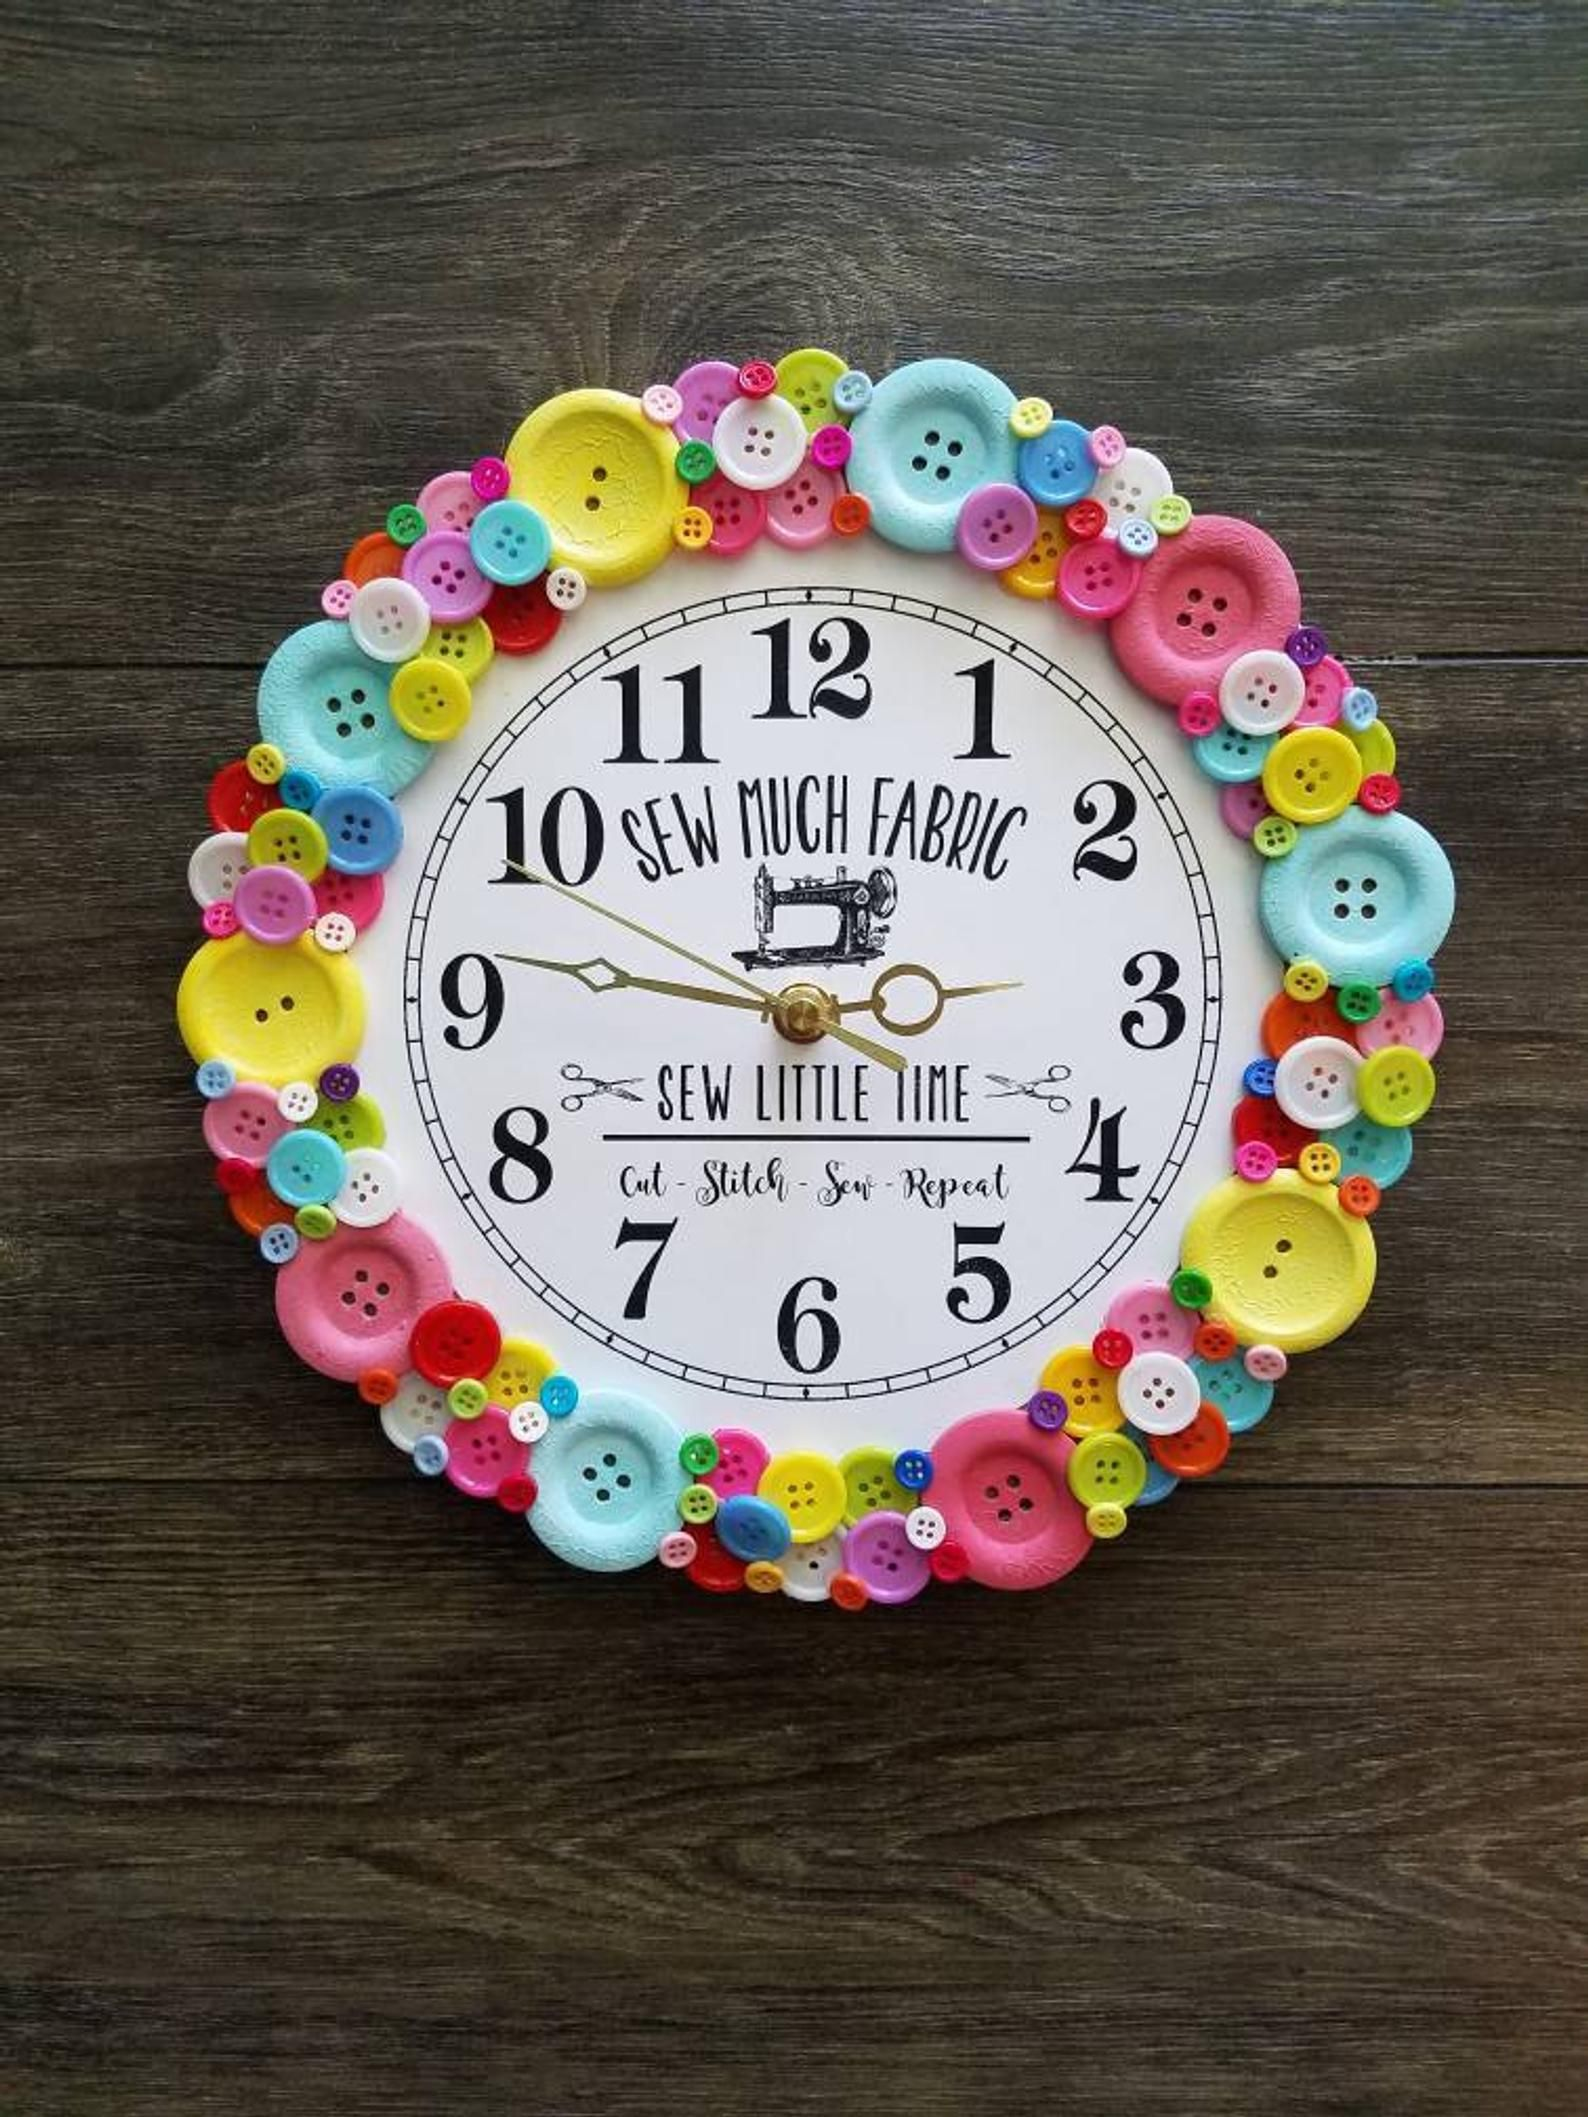 Sewing Room Clock 11 Craft Room Wall Decor Quilting Quilter Seamstress Crafter Gift Colored Buttons Fabric Sew Mother S Day Gift Sewing Room Decor Crafter Gift Button Crafts